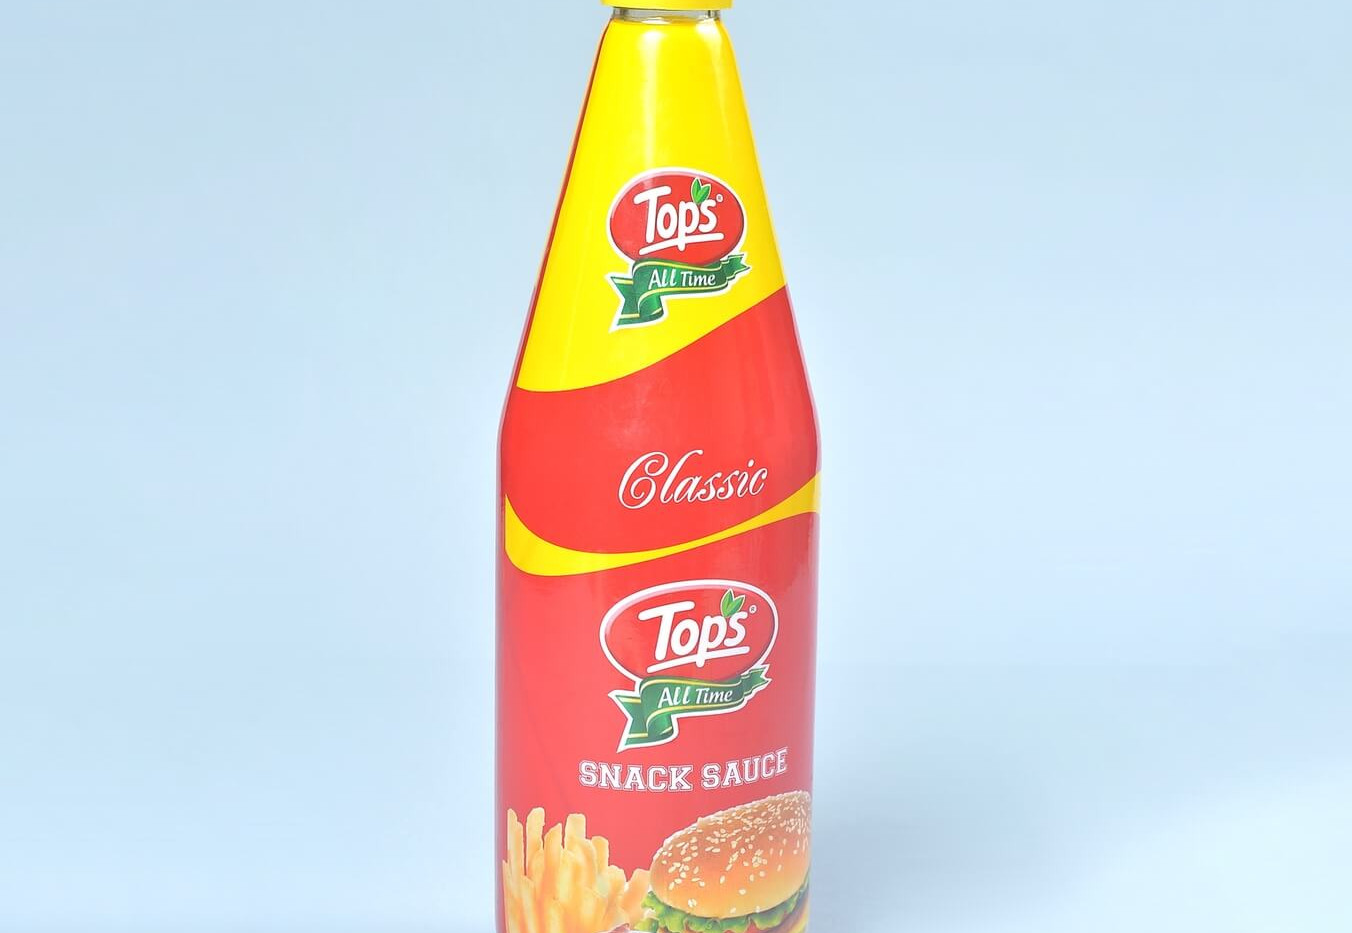 Tops Snack Sauce shrink sleeved bottle